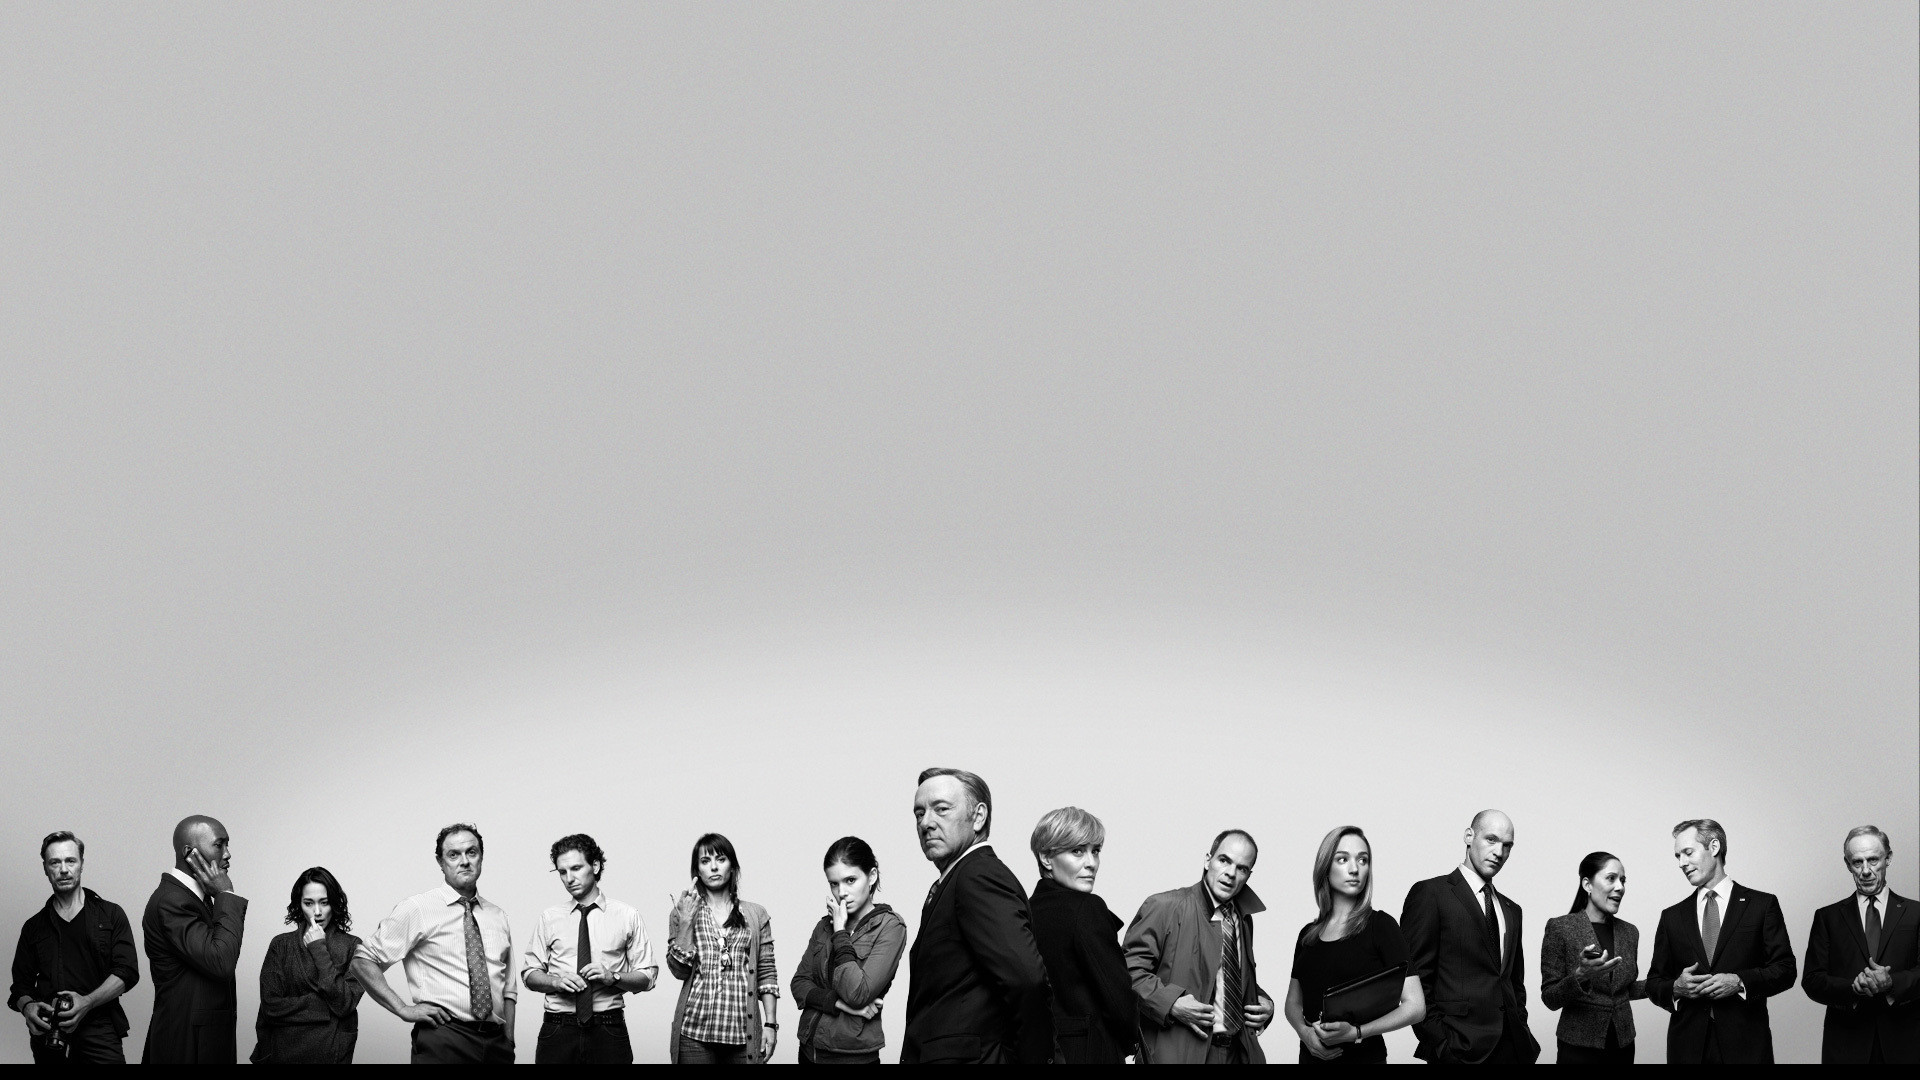 House of cards wallpapers pictures images for Full hd house image